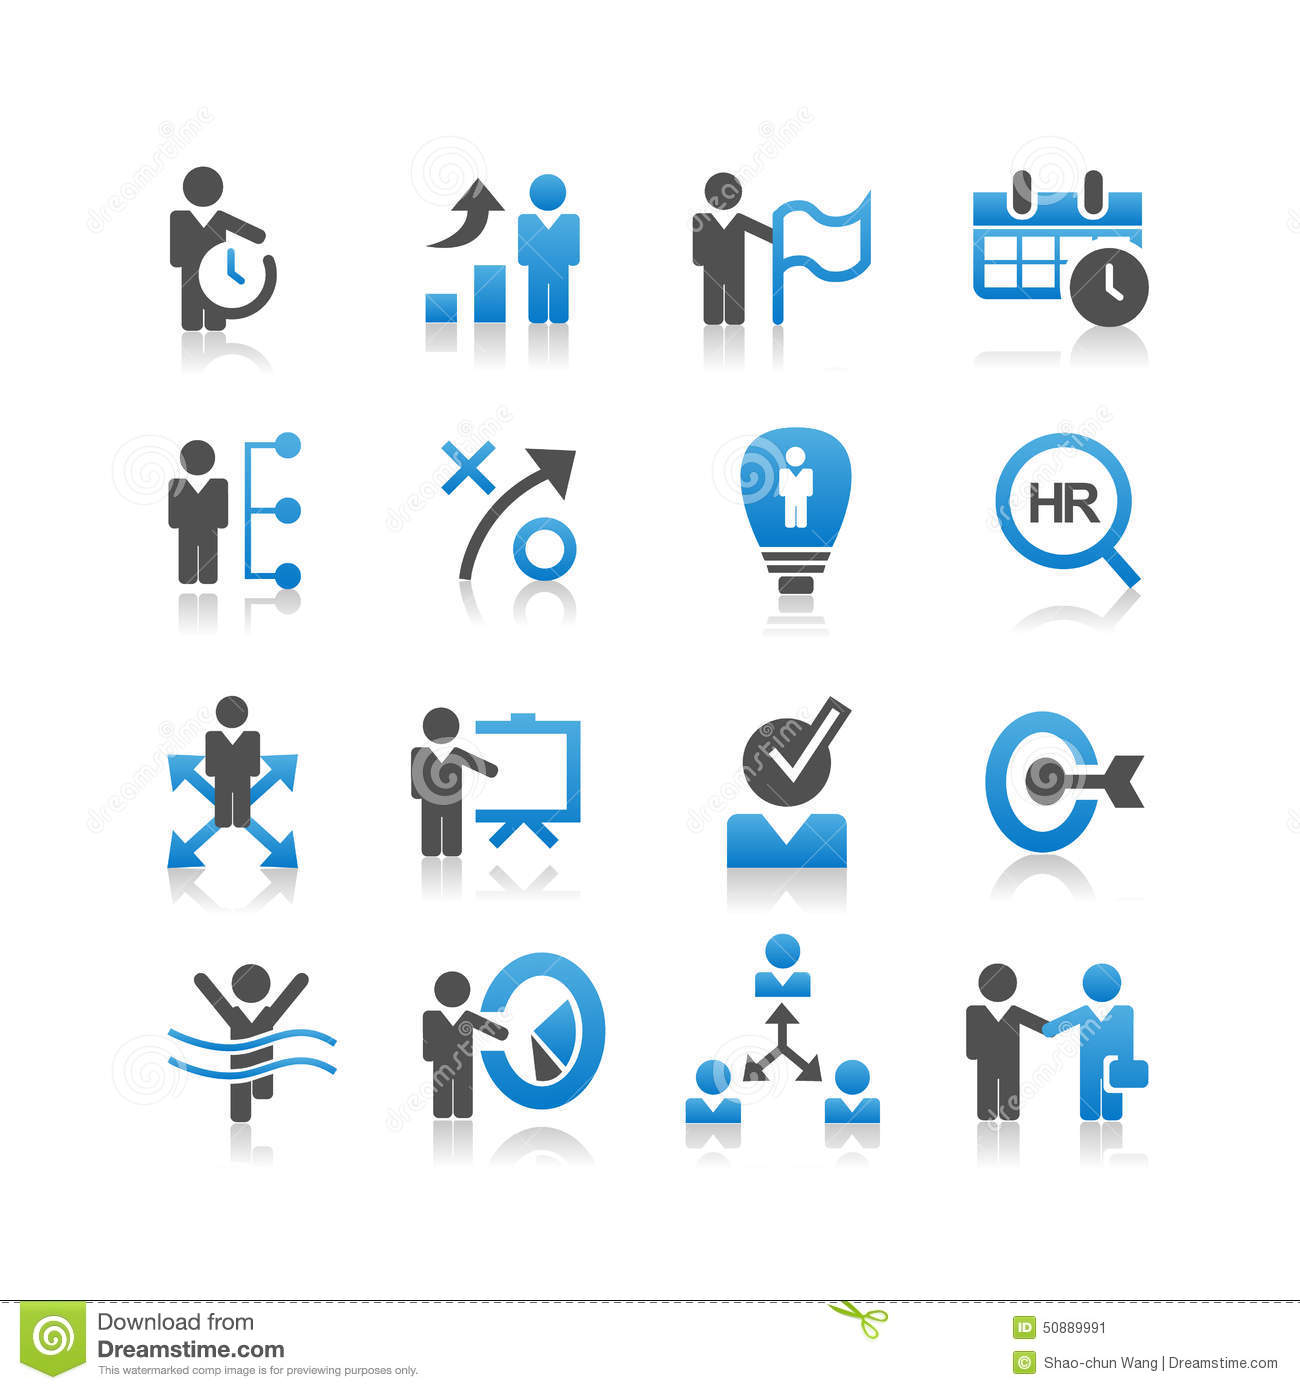 9 Business Resources Icon Images